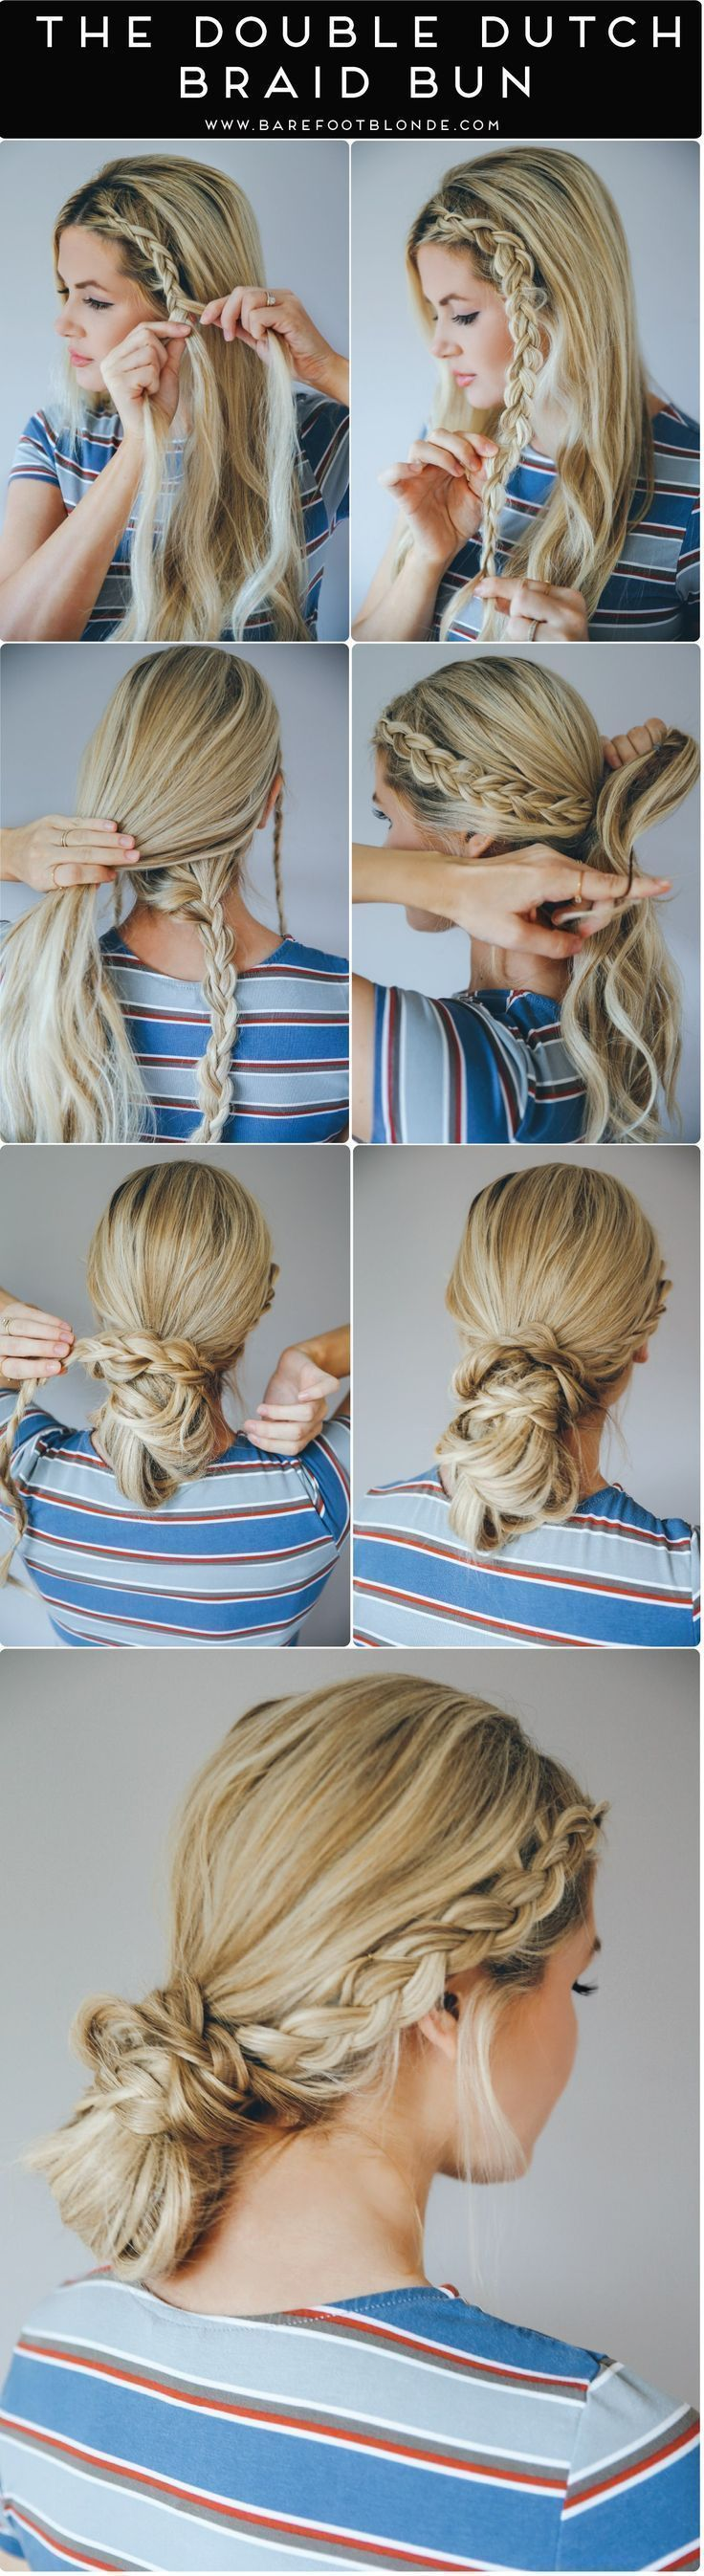 9 Super Easy Braids That Will Fix Any Bad Hair Day   Hair styles ...